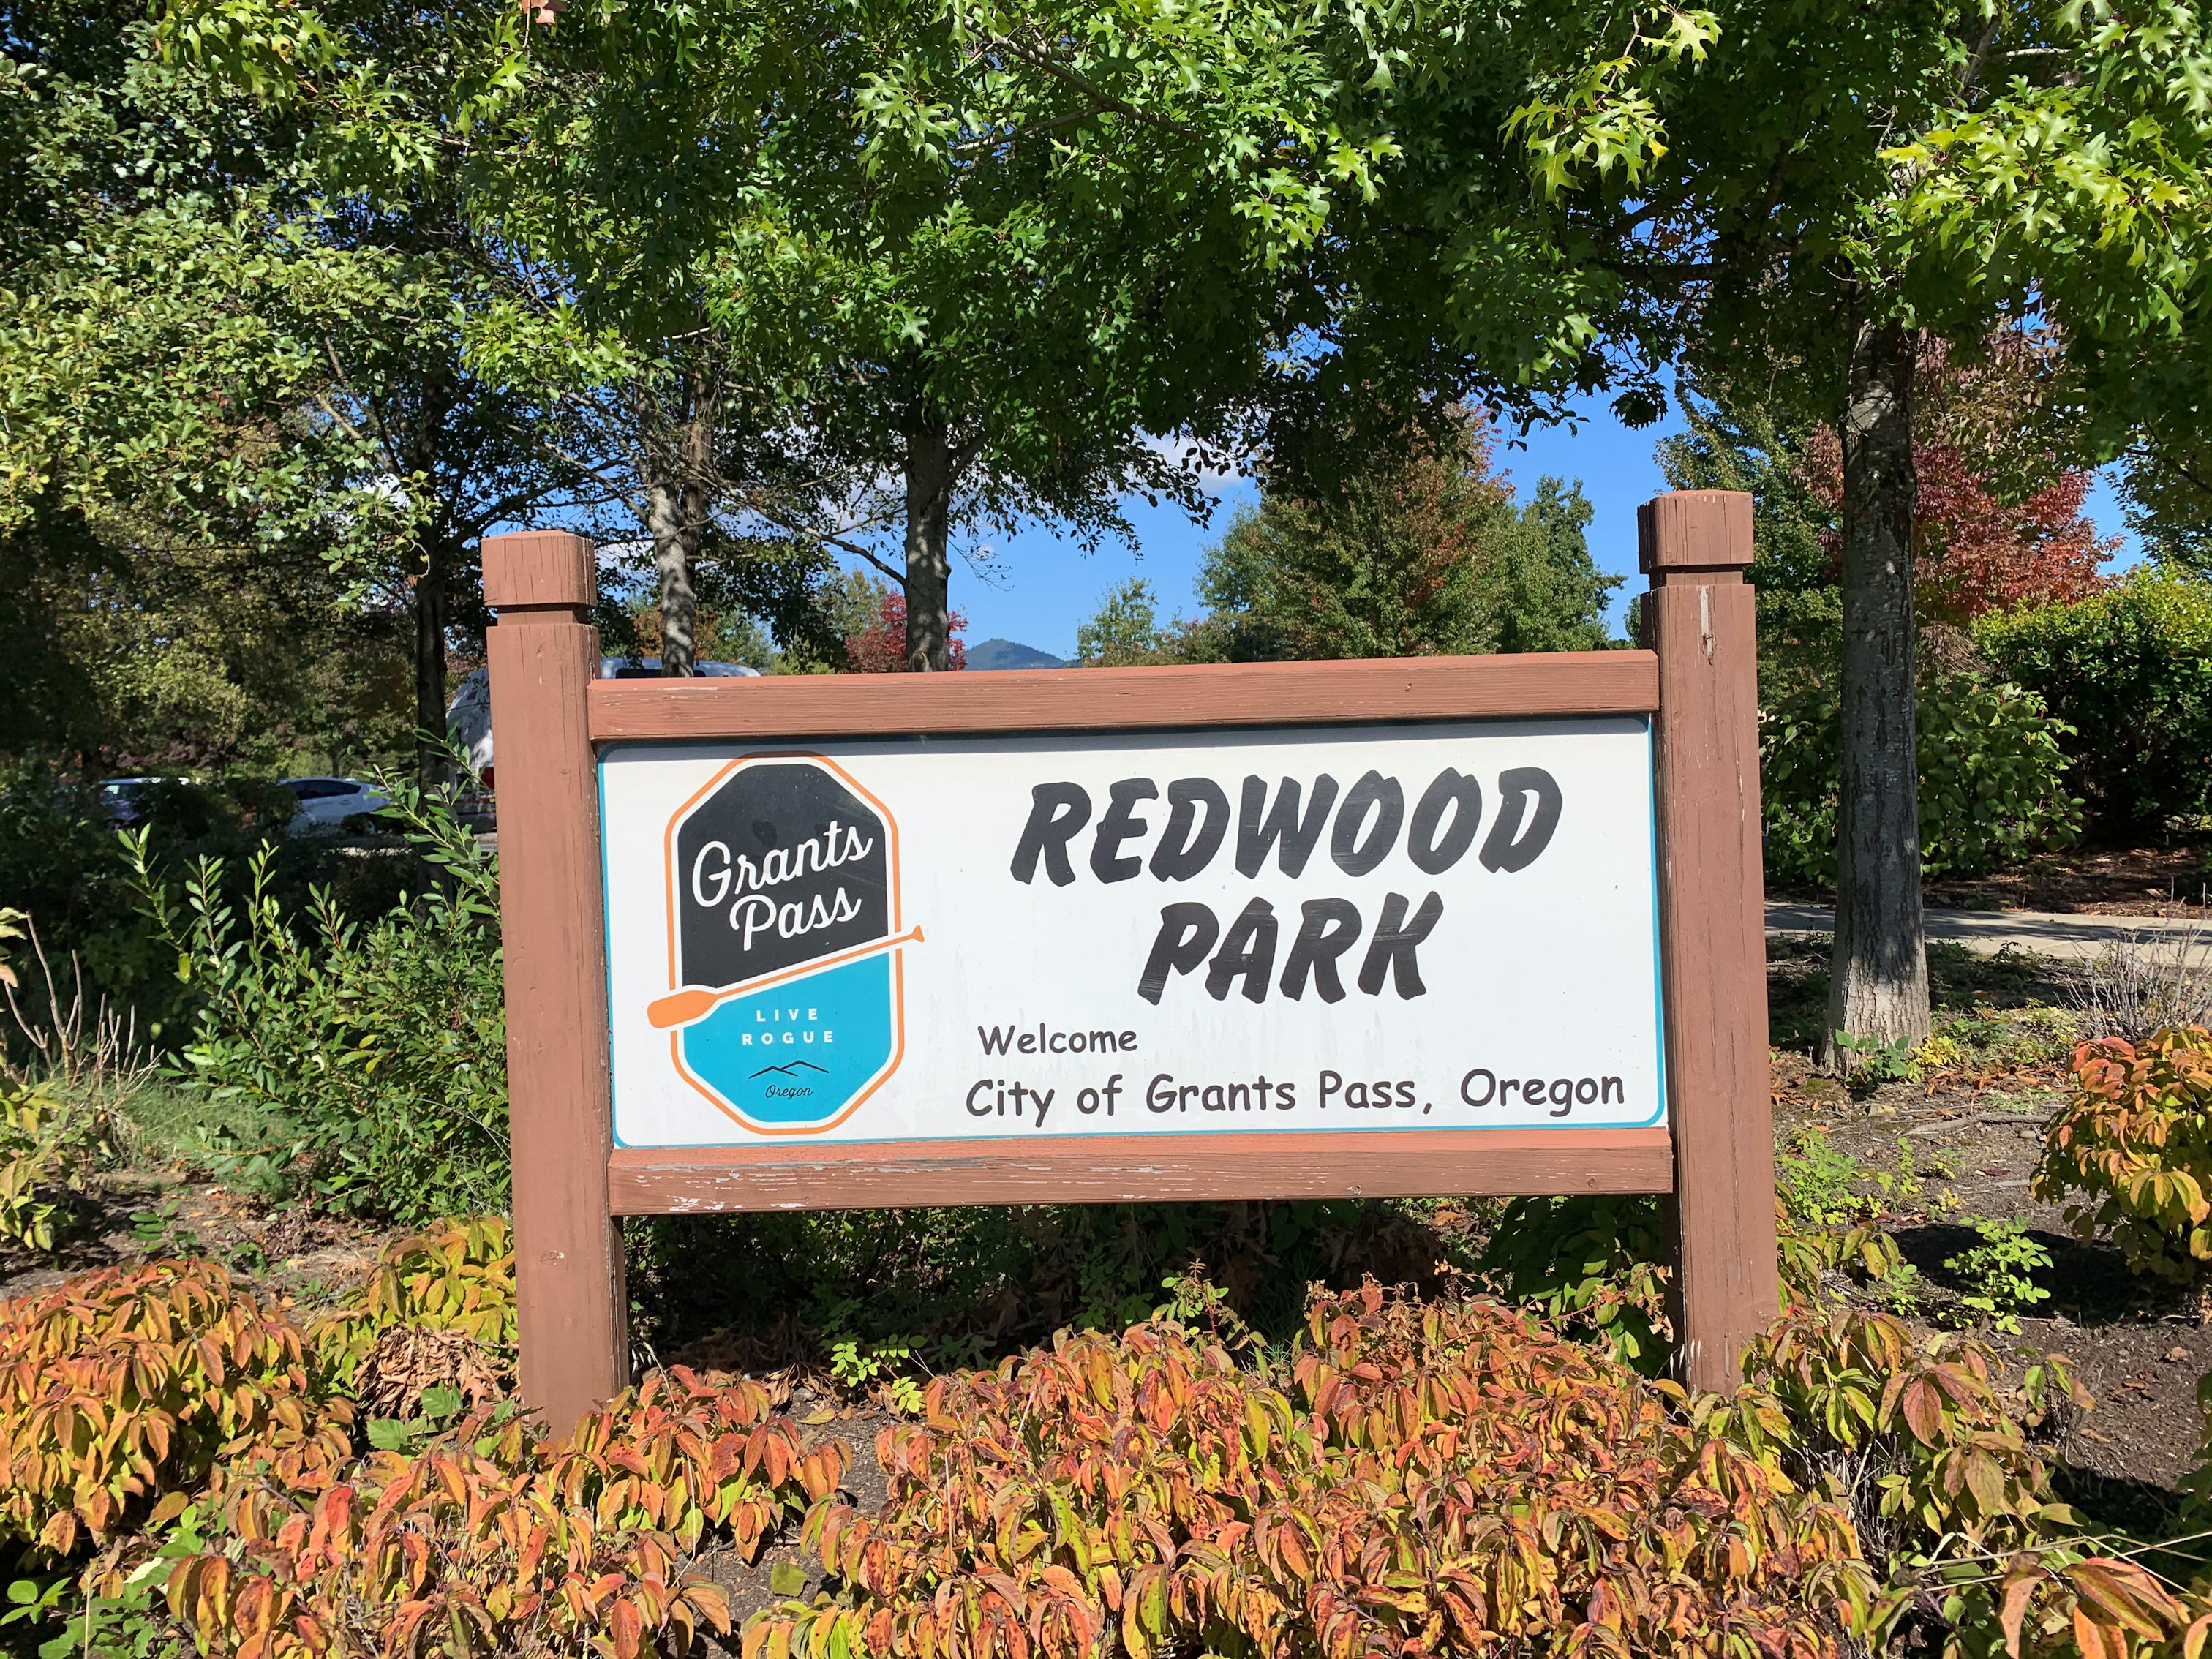 Redwood Park sign